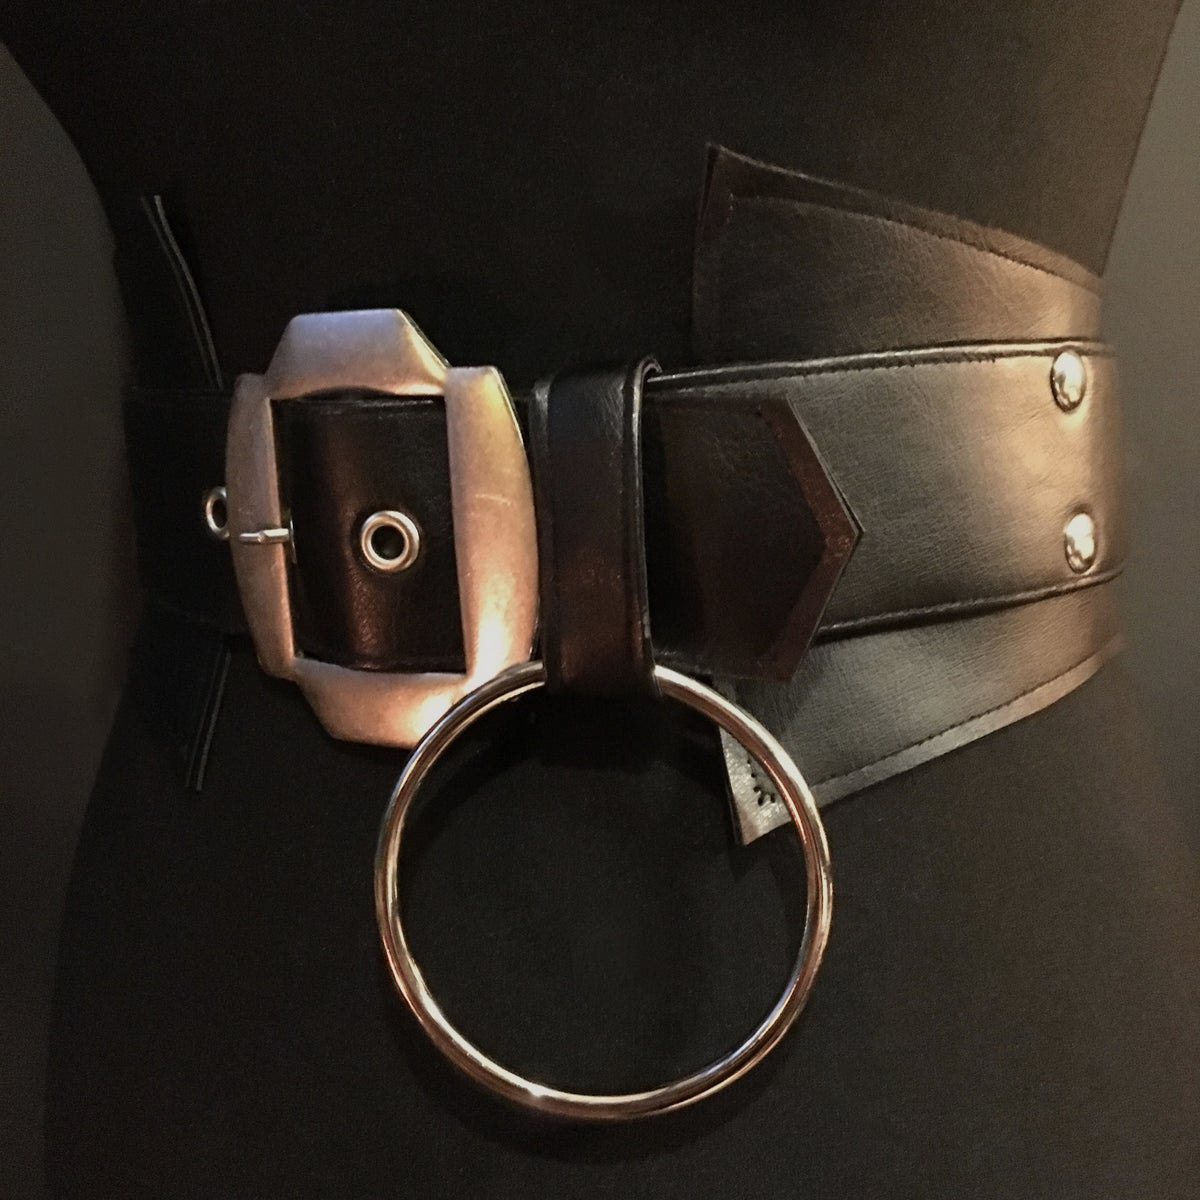 Vegan leather sincher with vintage buckle and o ring